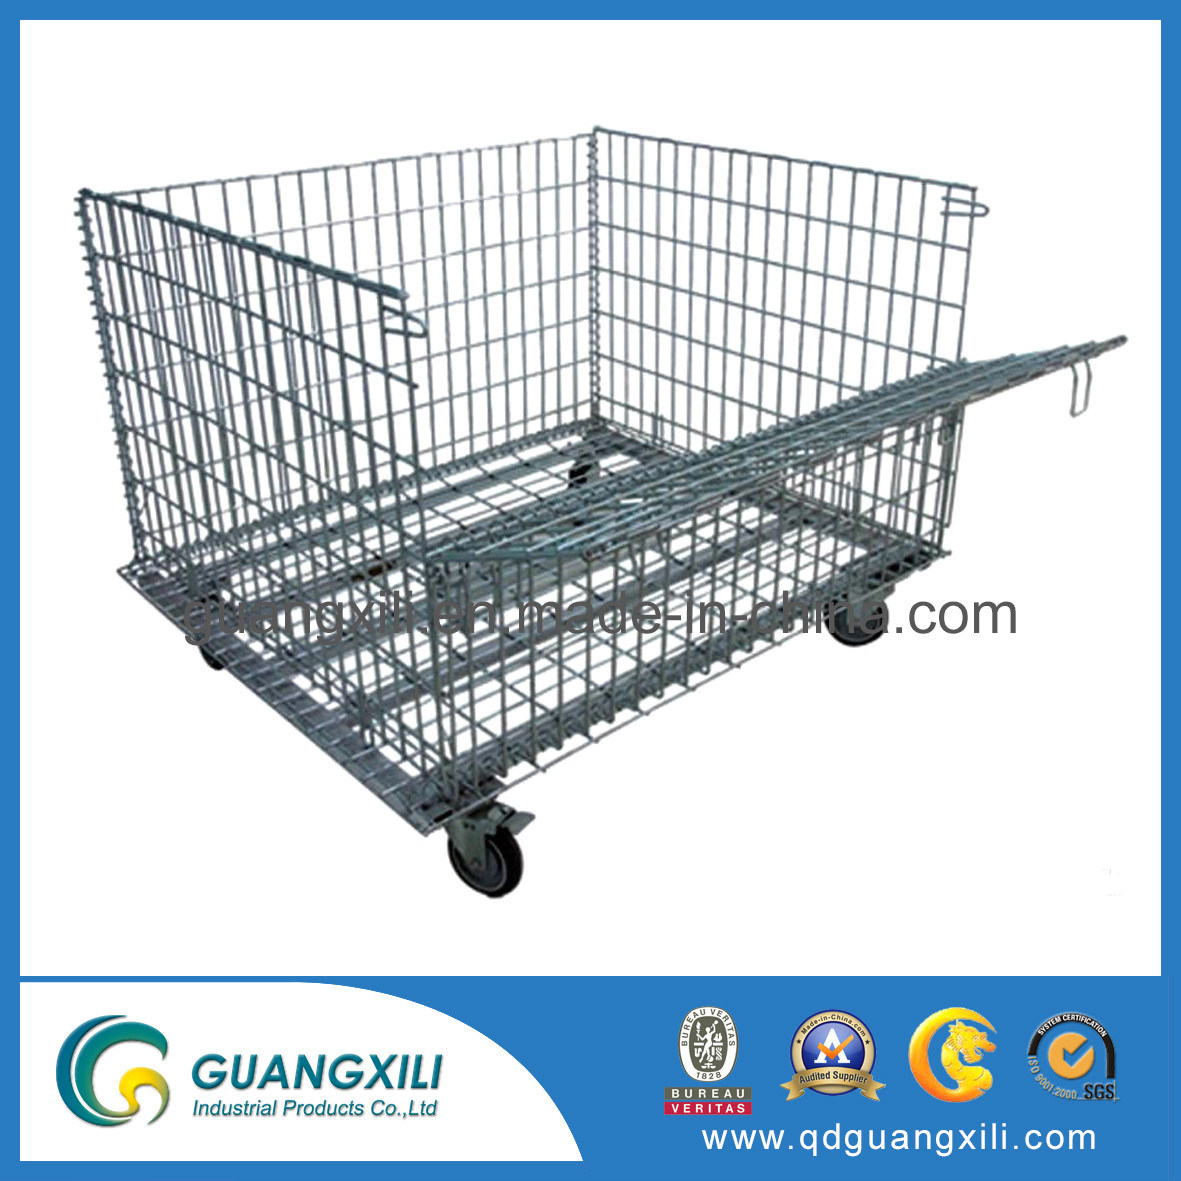 China Wire Mesh Box, Wire Mesh Box Manufacturers, Suppliers | Made ...